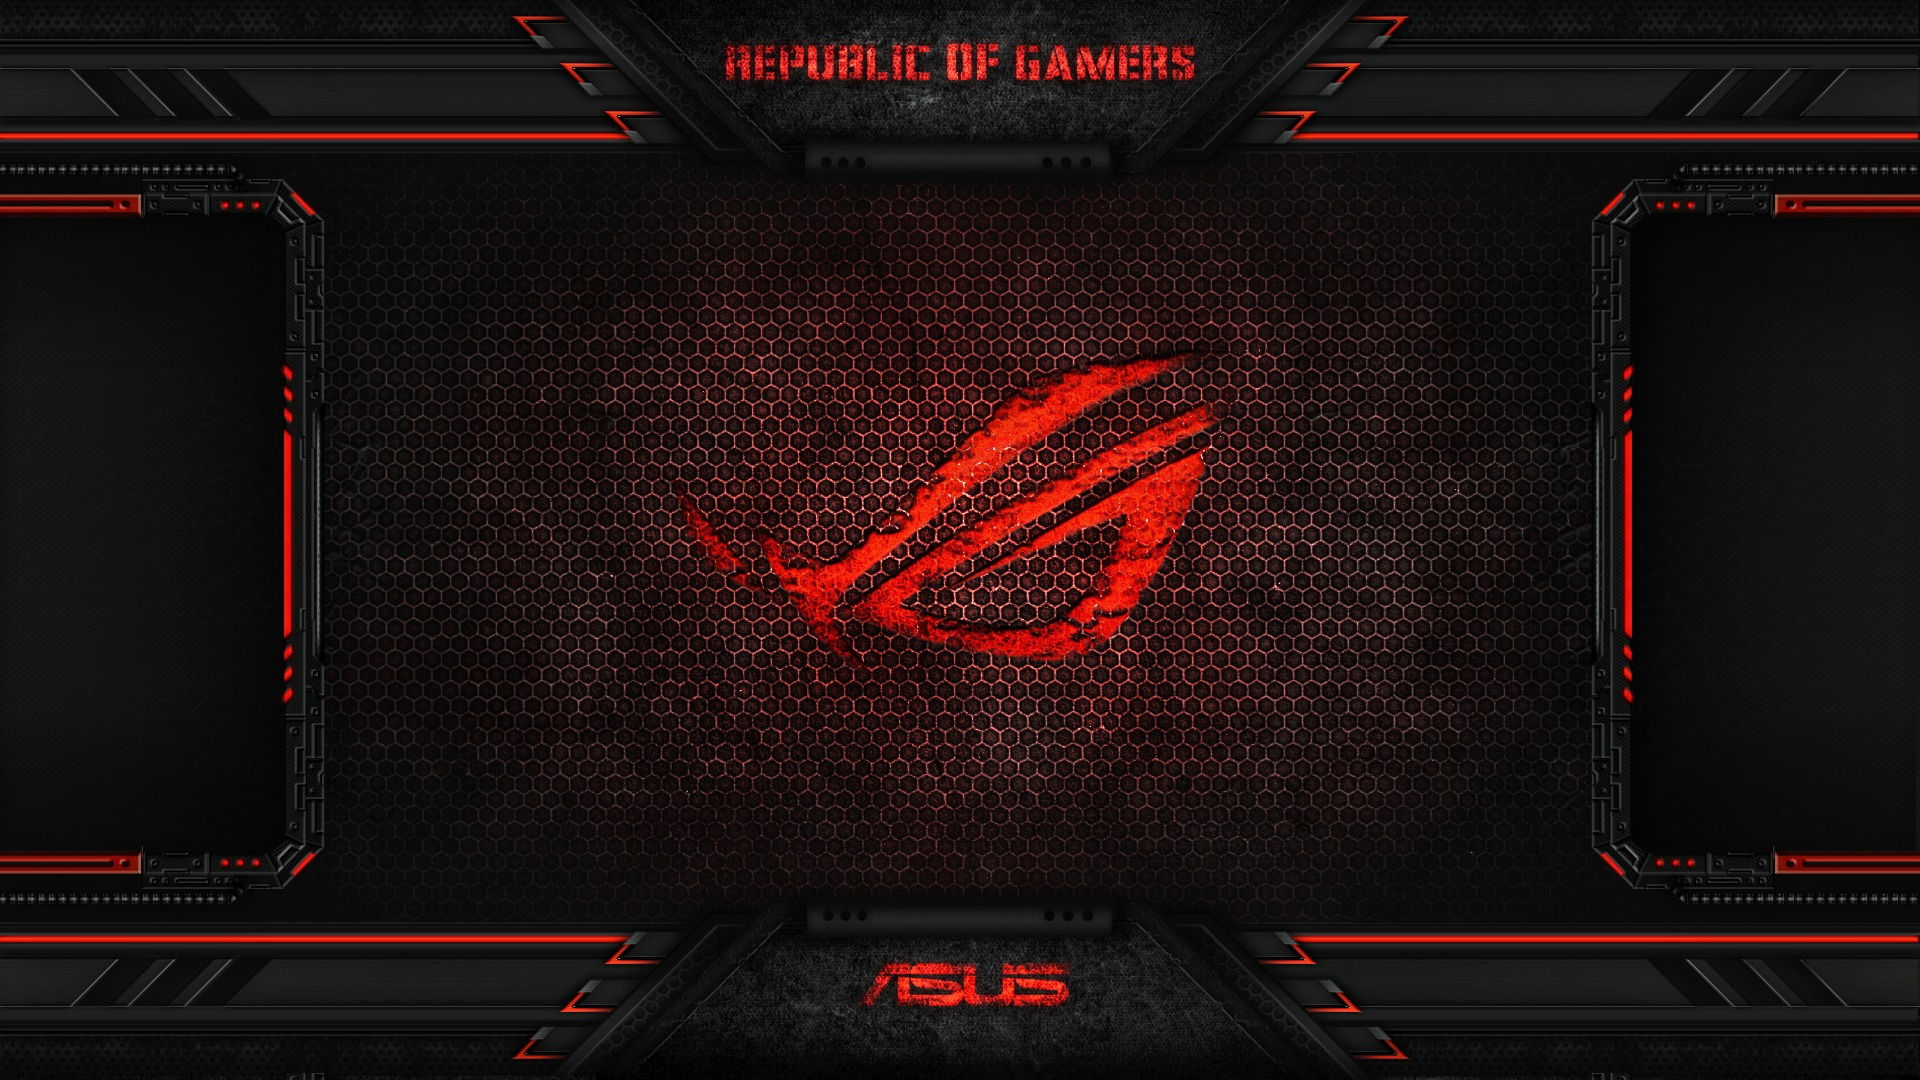 Red Asus Wallpaper: Download Wallpaper Red, Game, Asus, Rog, Asus Rog, Section